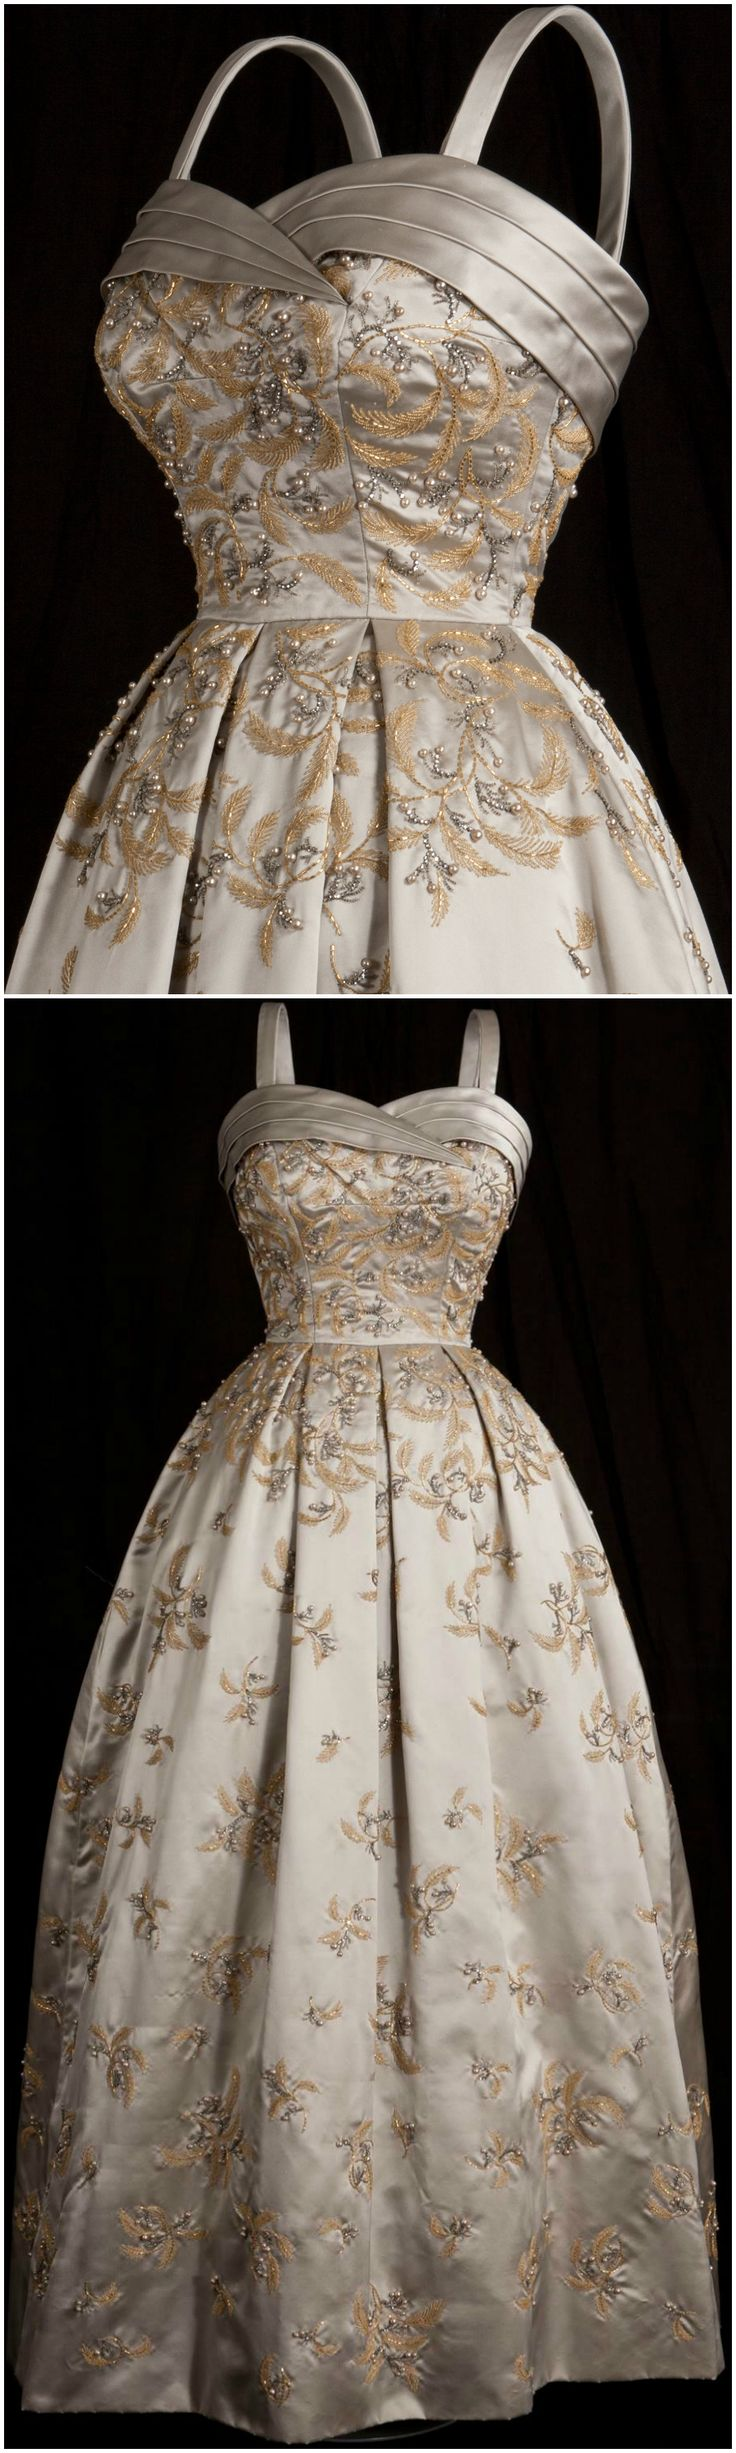 Evening gown worn by Queen Elizabeth II. Designed by Hardy Amies. 1958. Photos © Her Majesty Queen Elizabeth II 2013. Image Historic Royal Palaces / Robin Forster. CLICK THROUGH FOR BIGGER IMAGES.